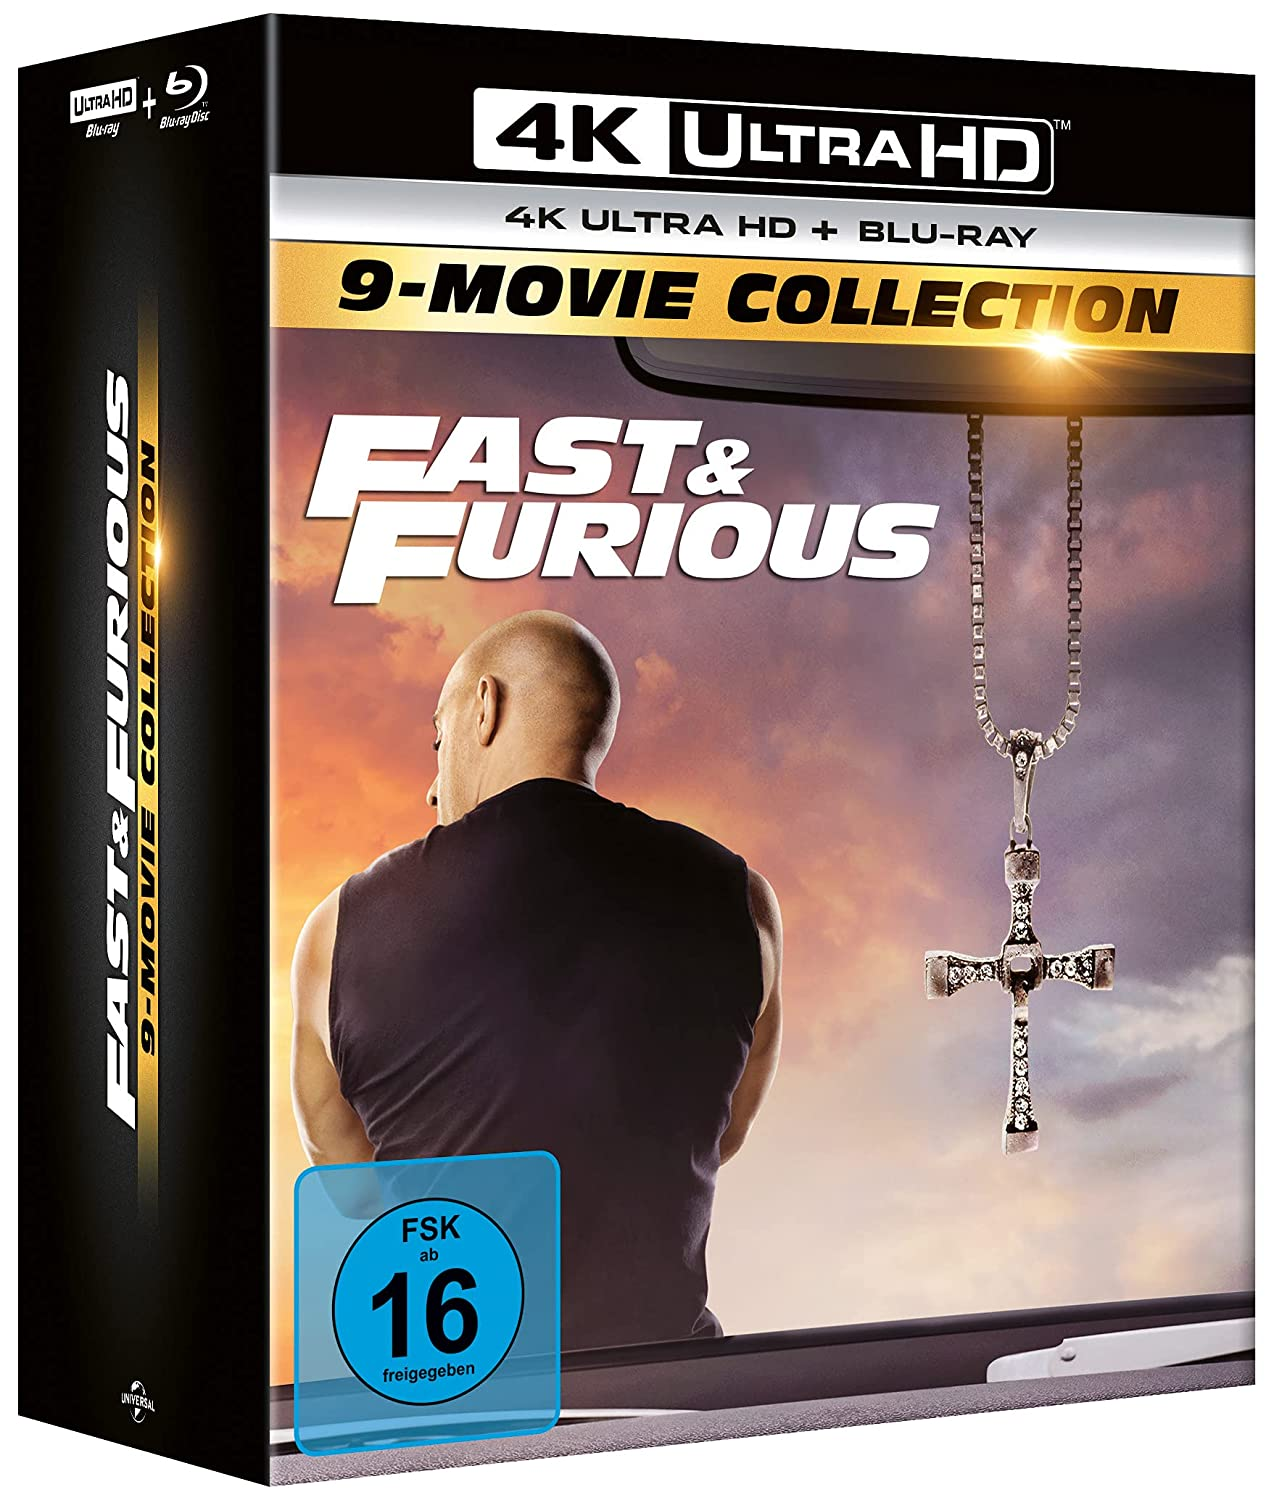 Fast & Furious 9 Movie Collection - 4K UHD